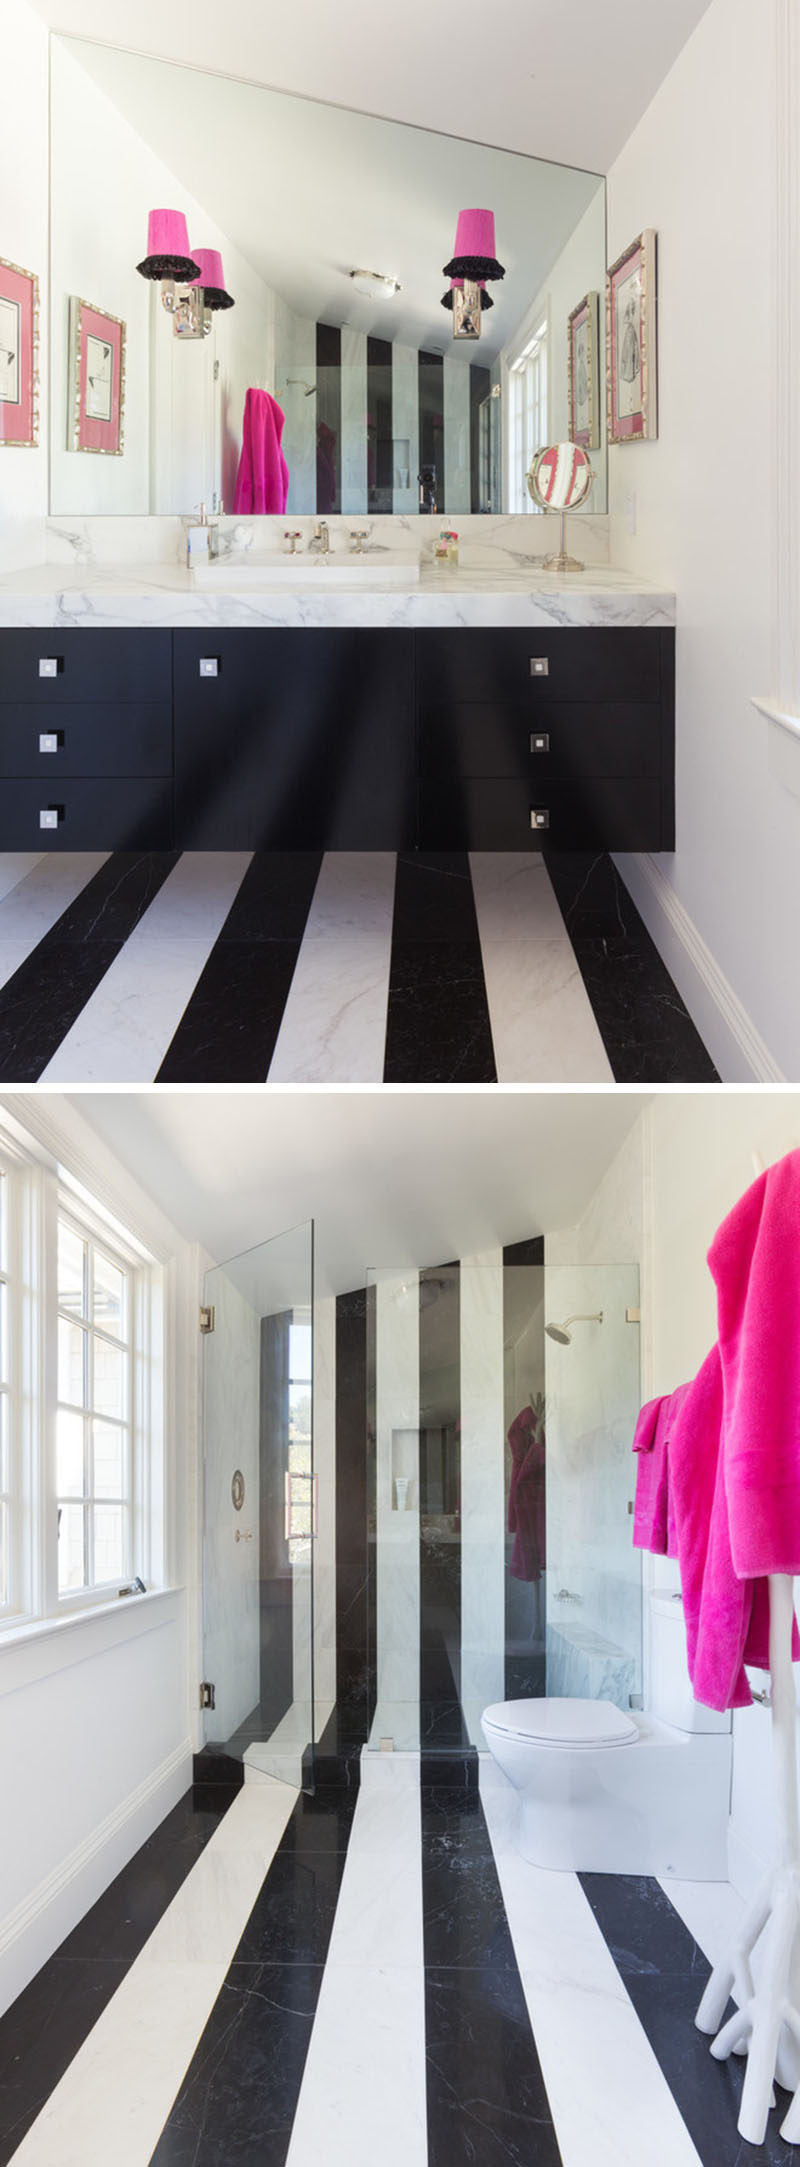 7 Examples Of Striped Floors In Contemporary Homes // The black and white striped flooring in this bathroom travels from under the vanity, across the floor, and up into the wall of the shower.